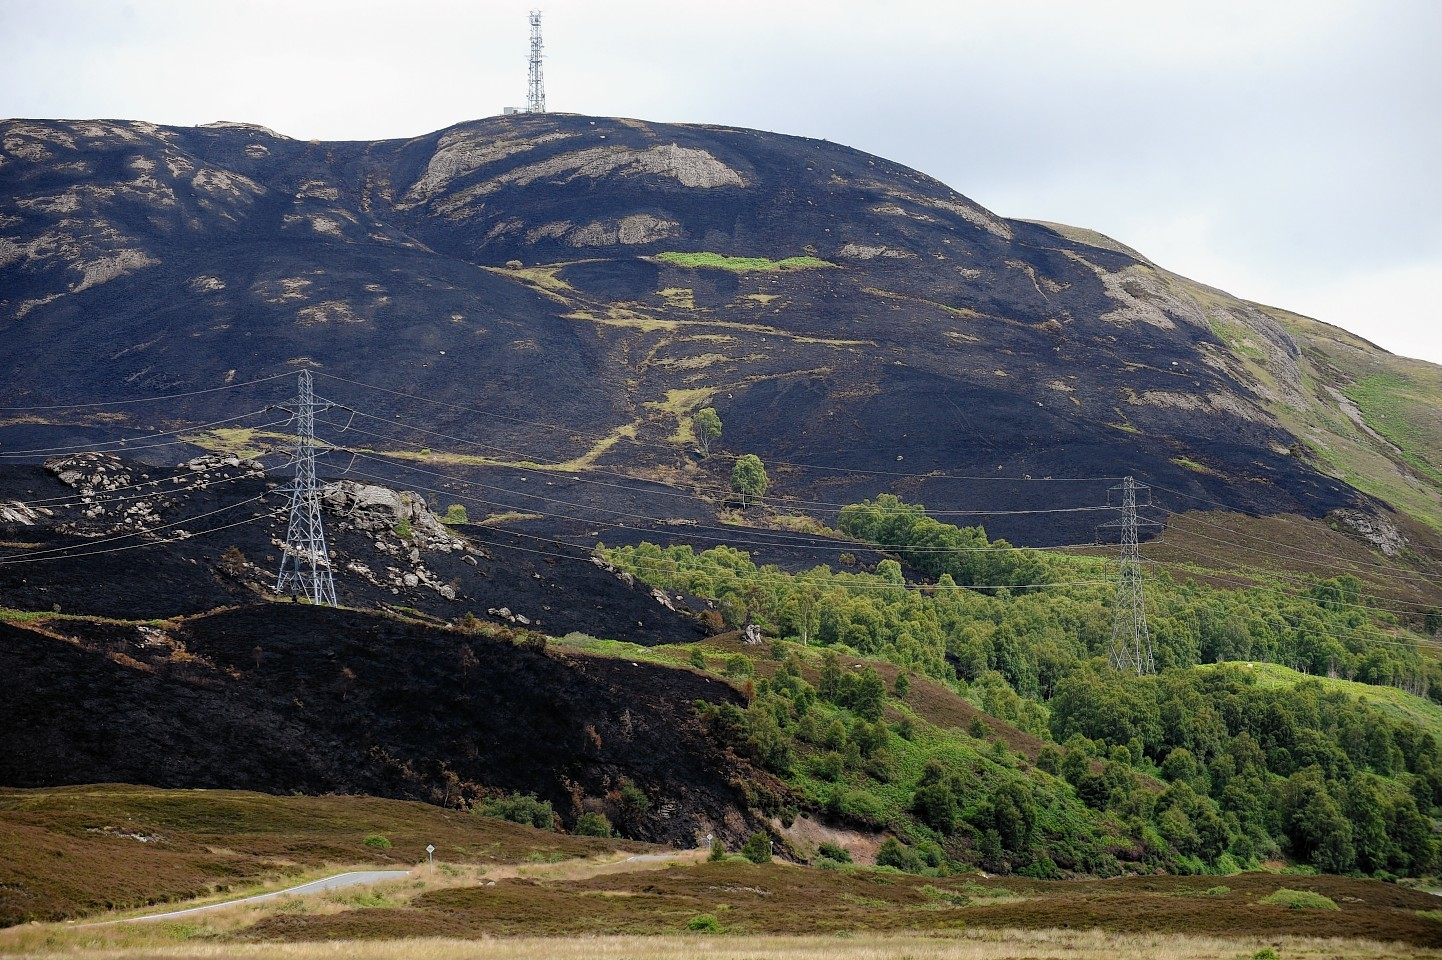 The charred hillside following the wildfire near Loch Ness